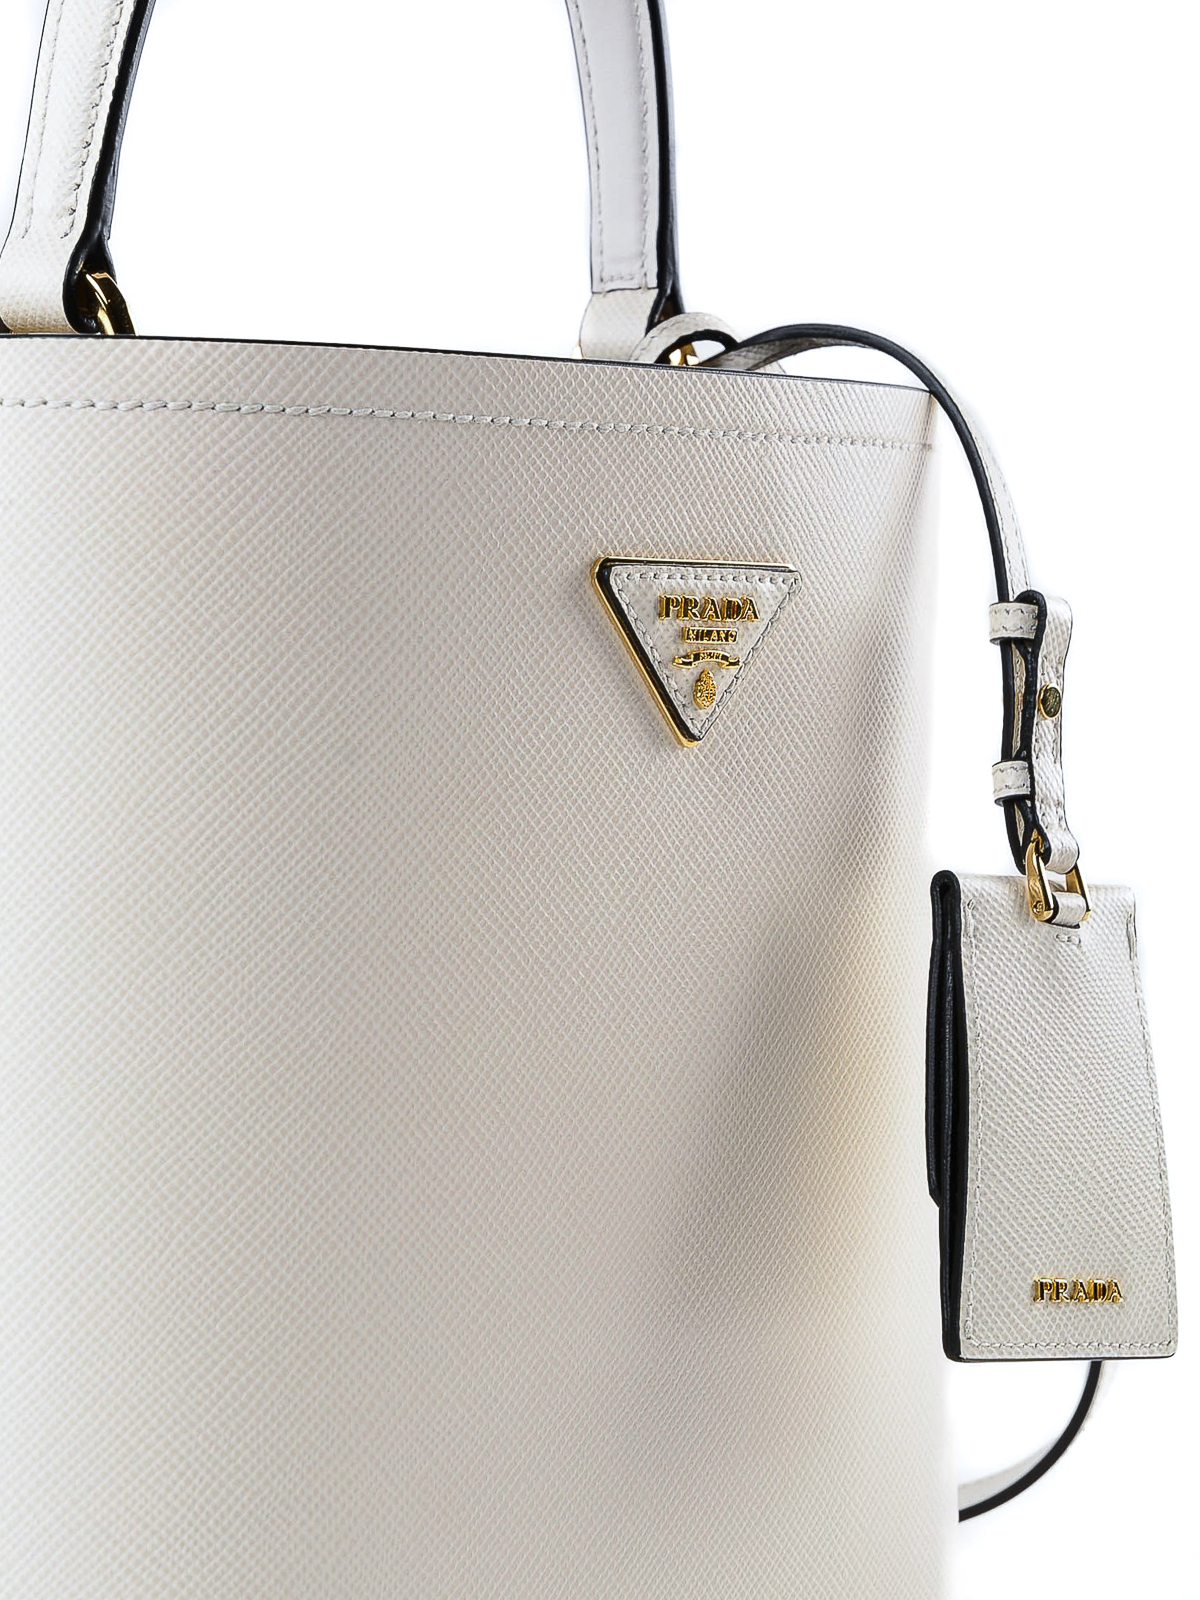 Prada - White Saffiano leather double bucket bag - Bucket bags ... afa9cad5638ef